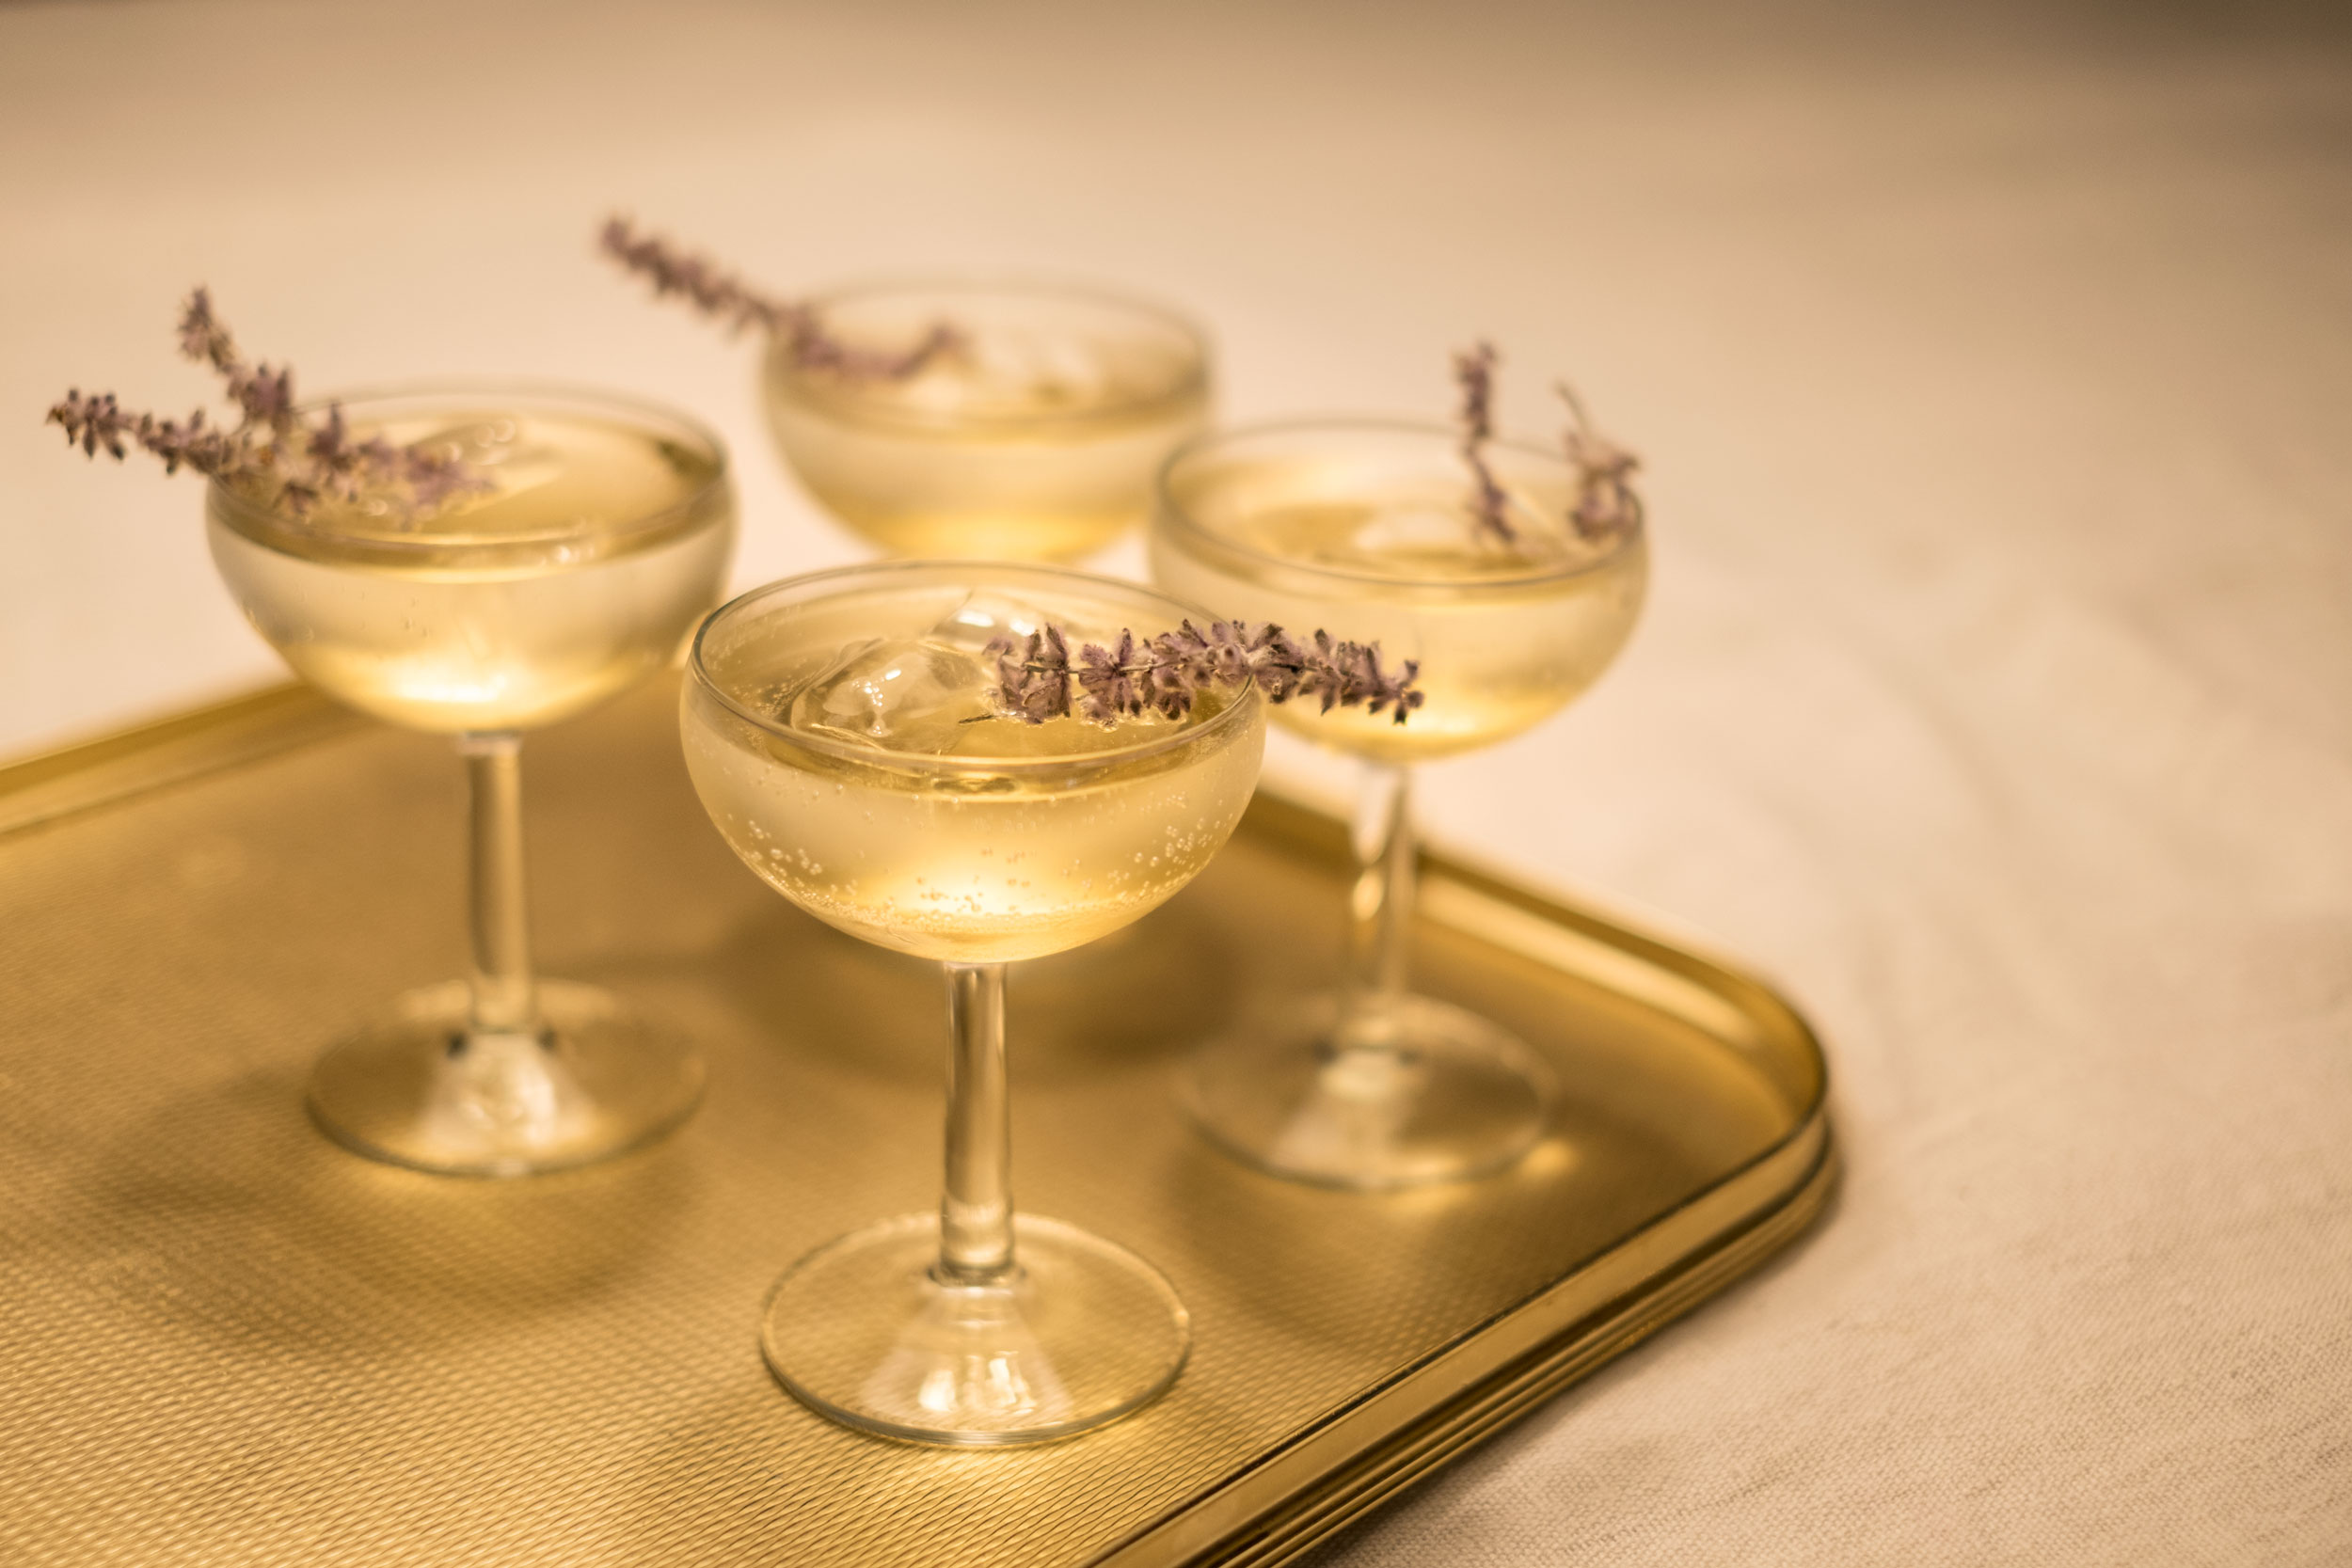 Fiona-Burrage-Norfolk-Cordial-Photographer-Still-Life-Champagne.jpg